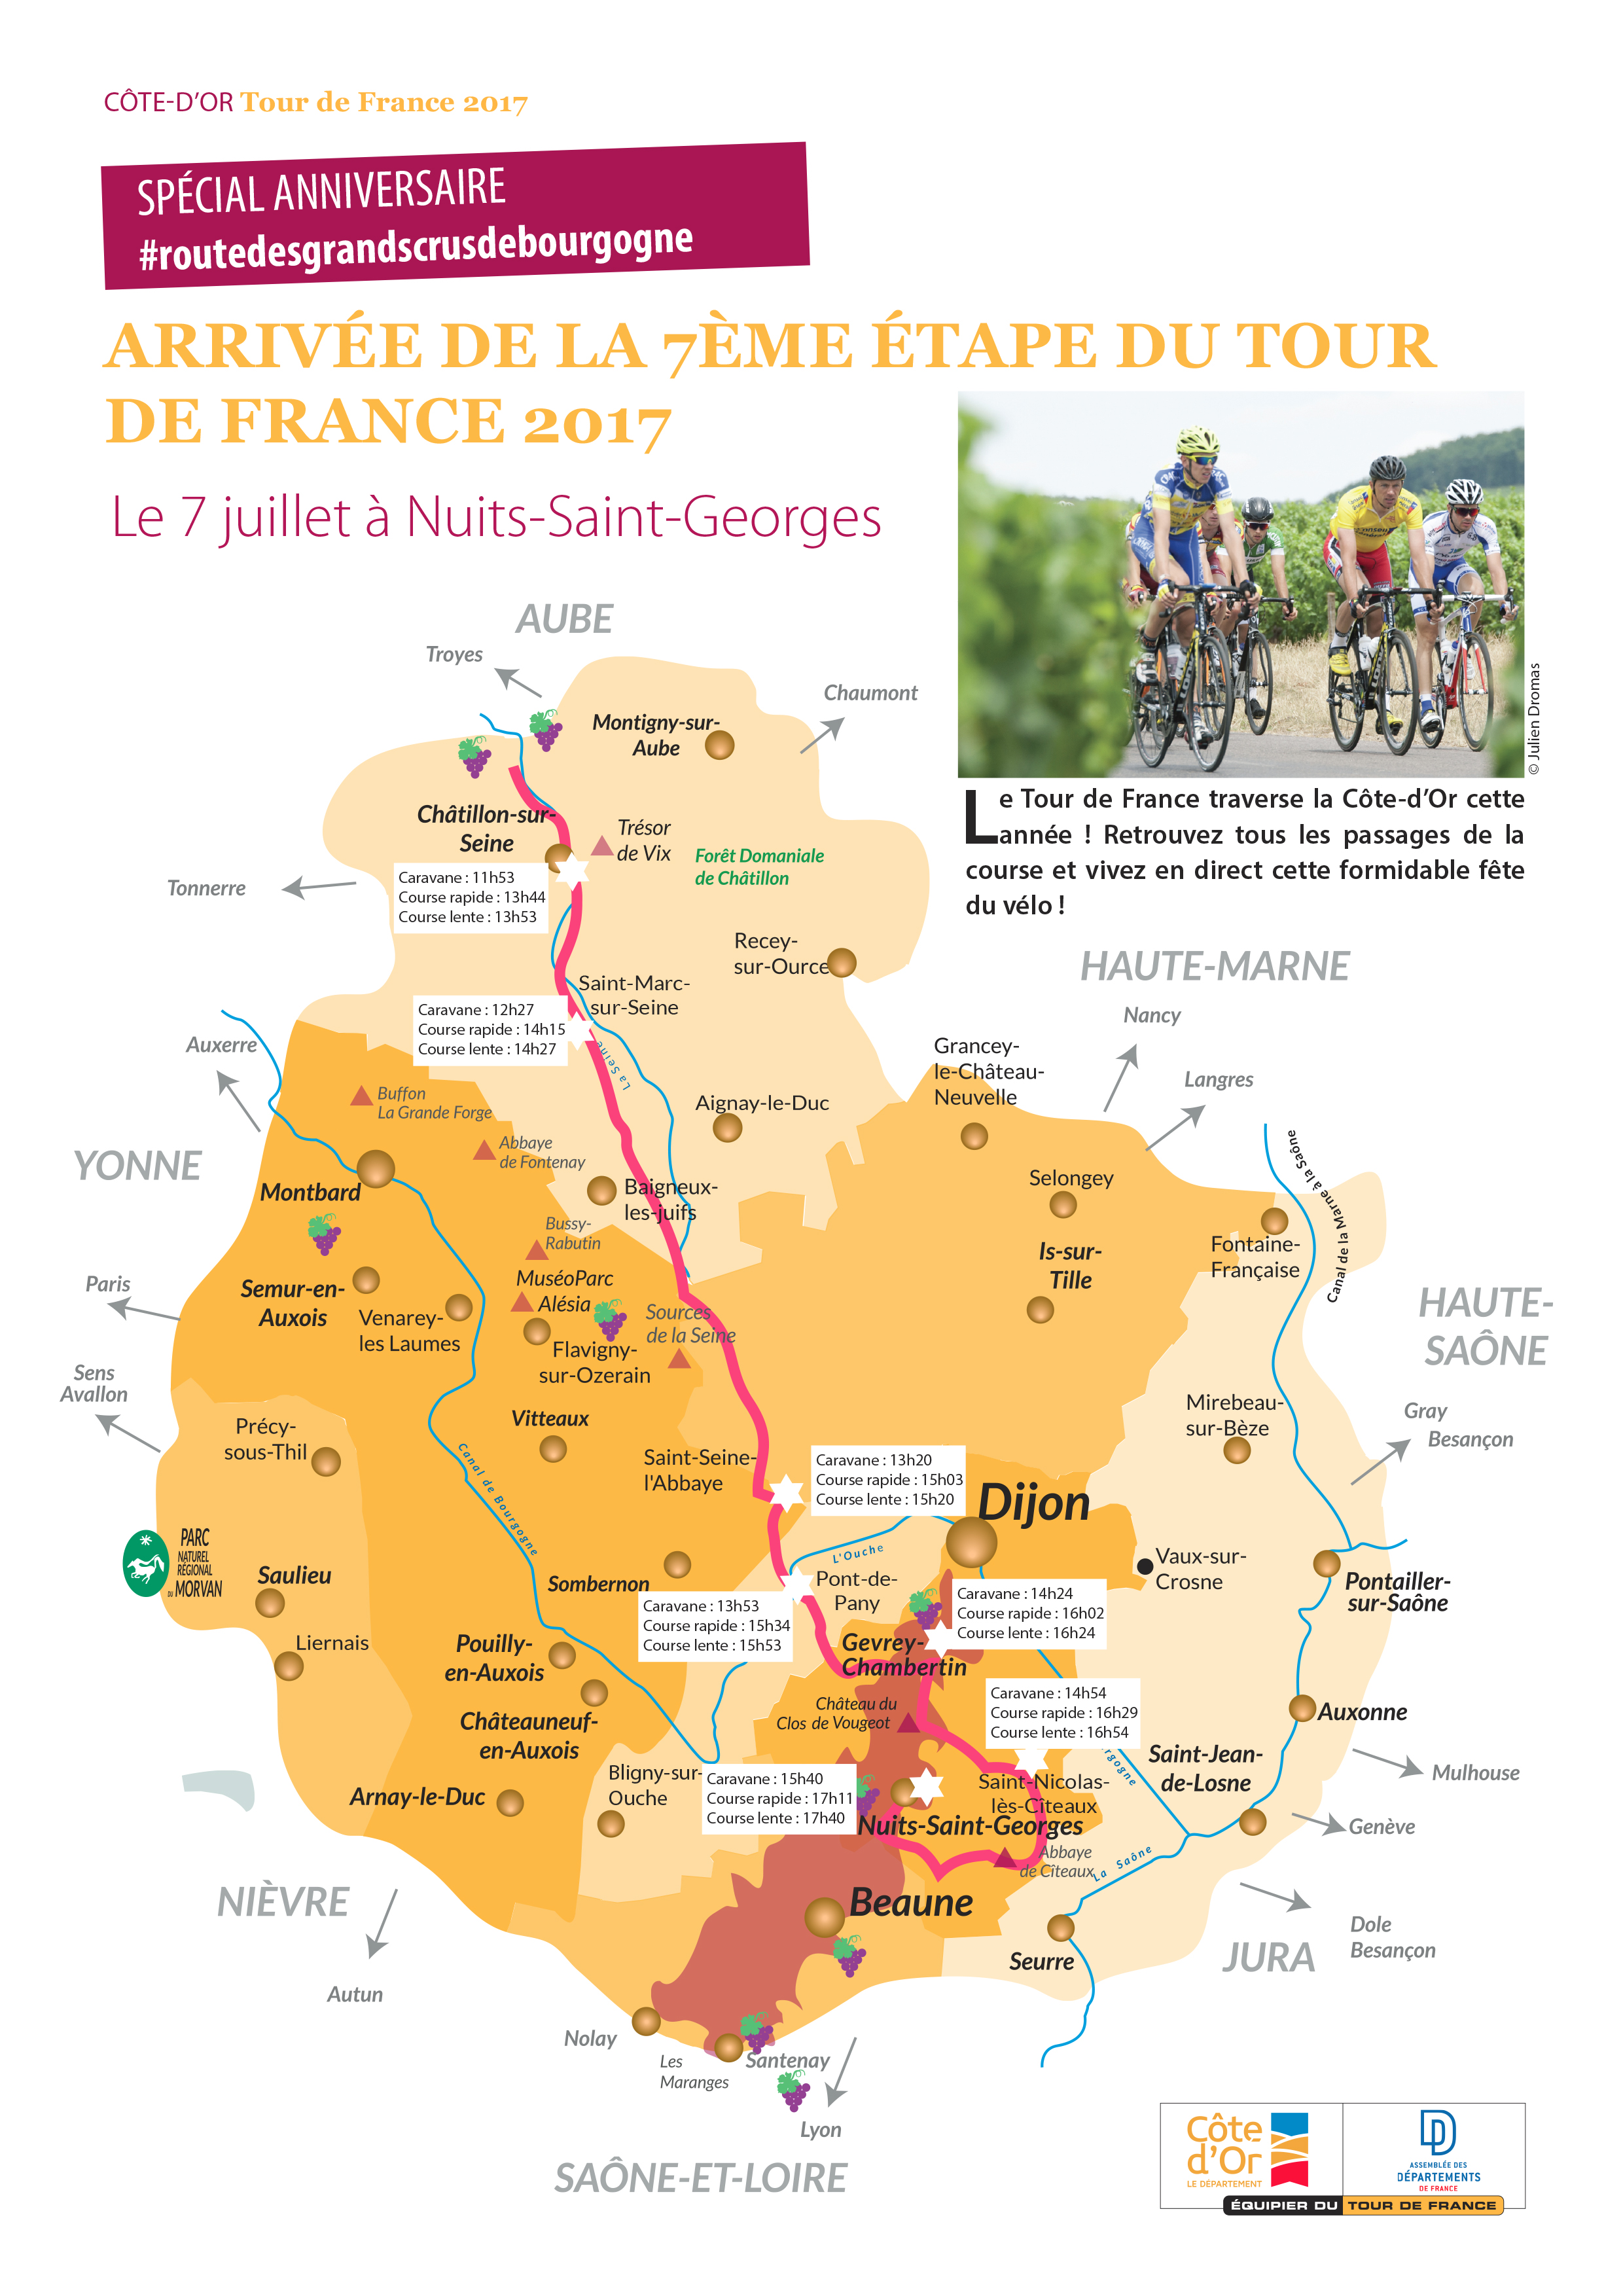 Le Tour en Côte-d'Or